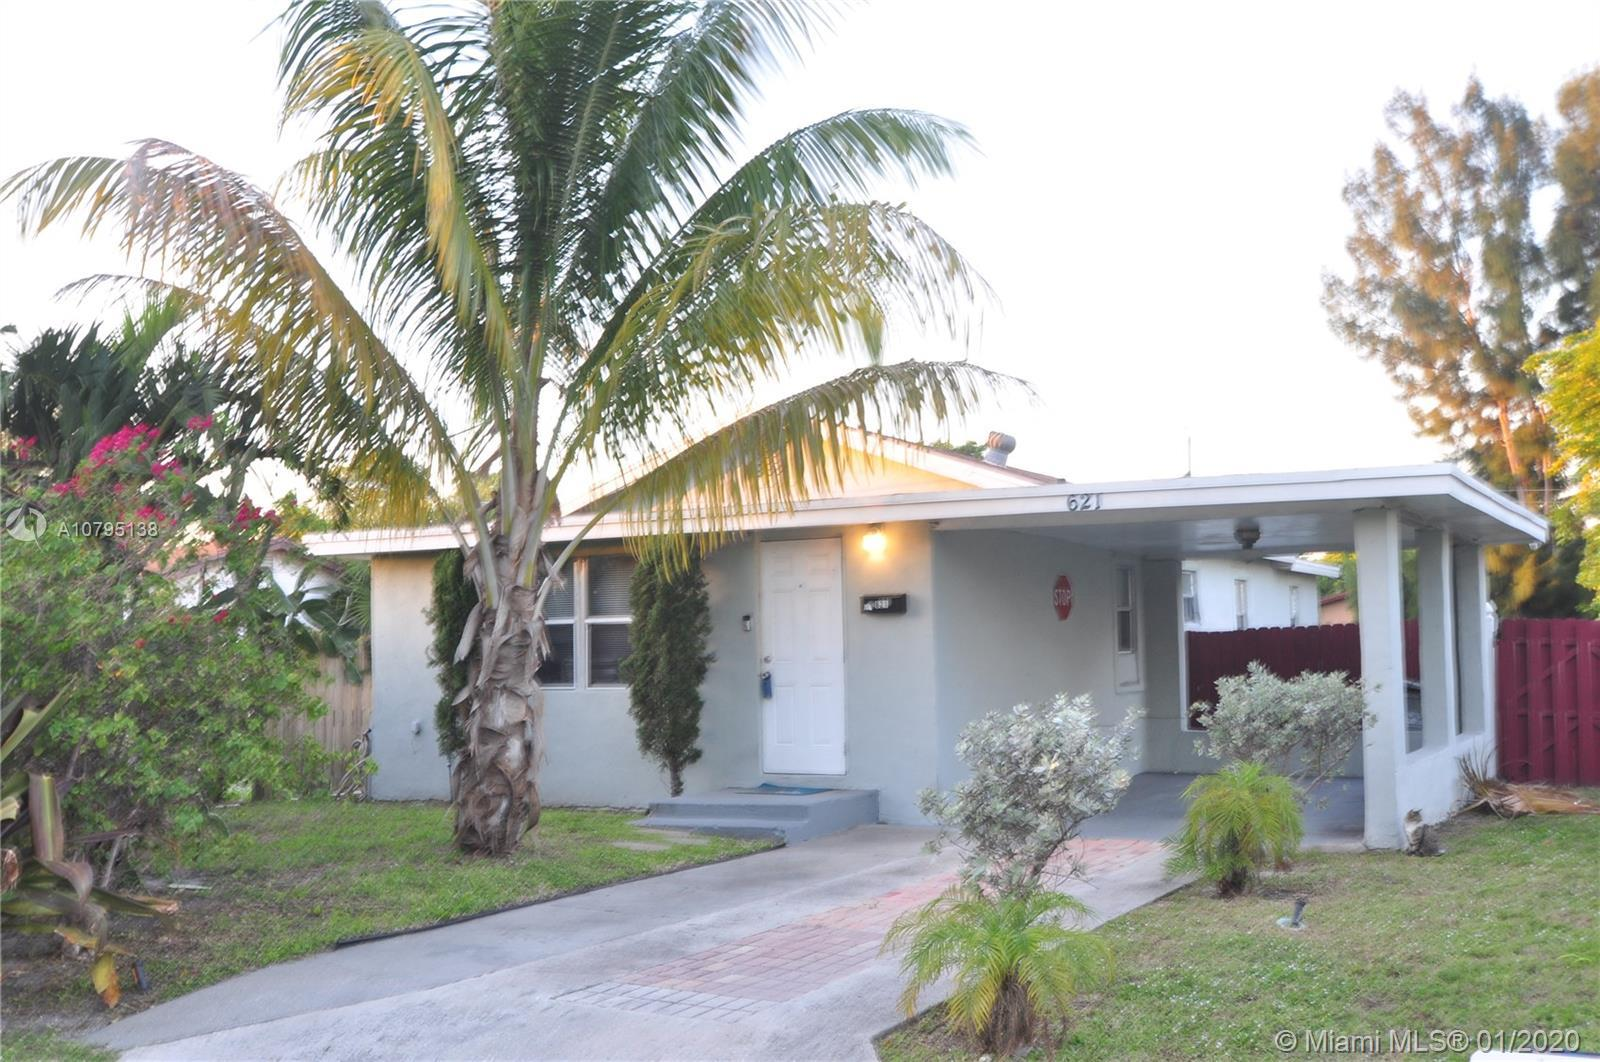 Great upgraded starter home or buy as investment. Very large backyard for expansion or boat and comm